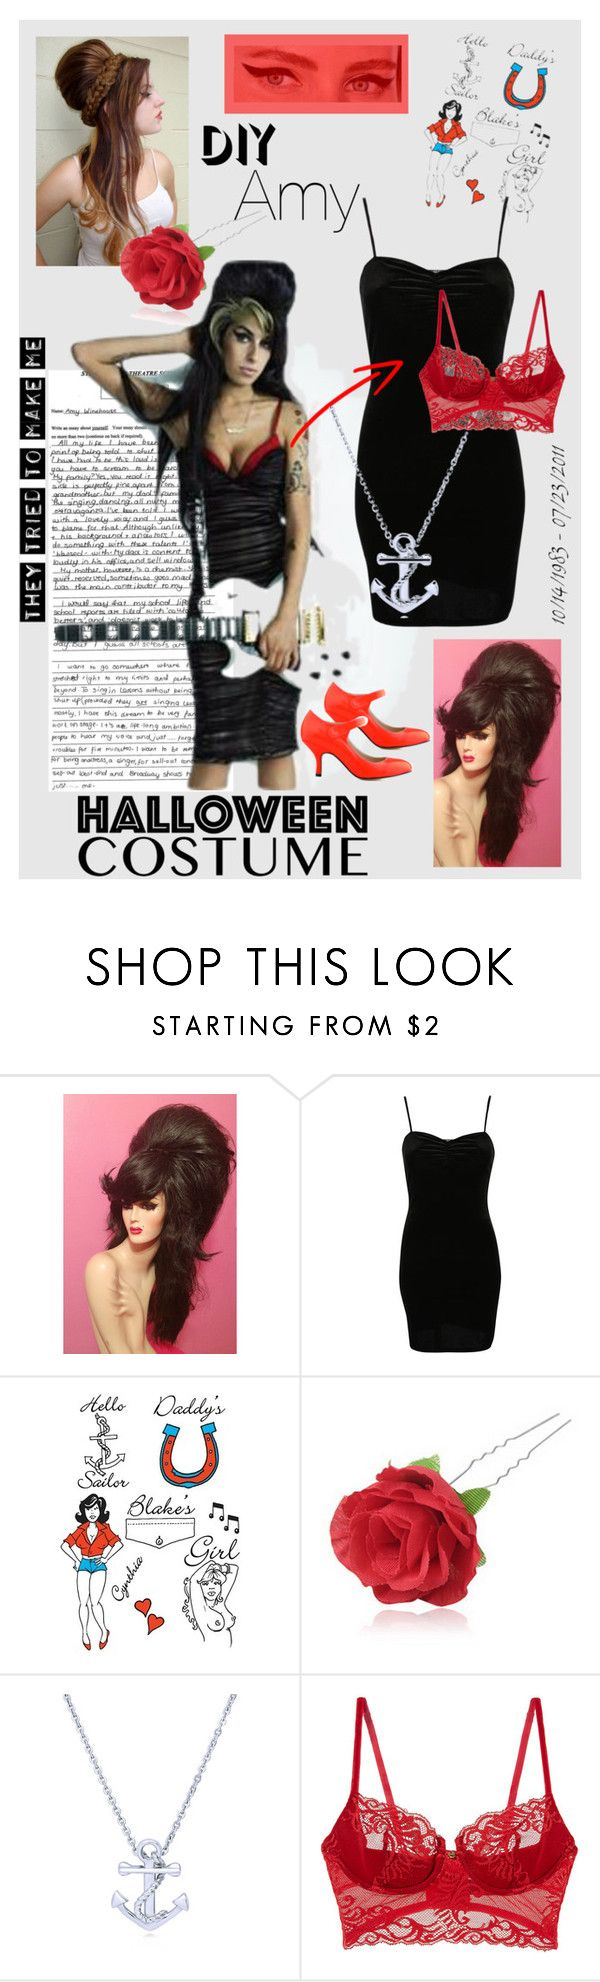 """""""DIY Amy Winehouse Halloween Costume"""" by cinthiasoto ❤ liked on Polyvore featuring Amy Winehouse, Pilot, Chicnova Fashion and BERRICLE"""